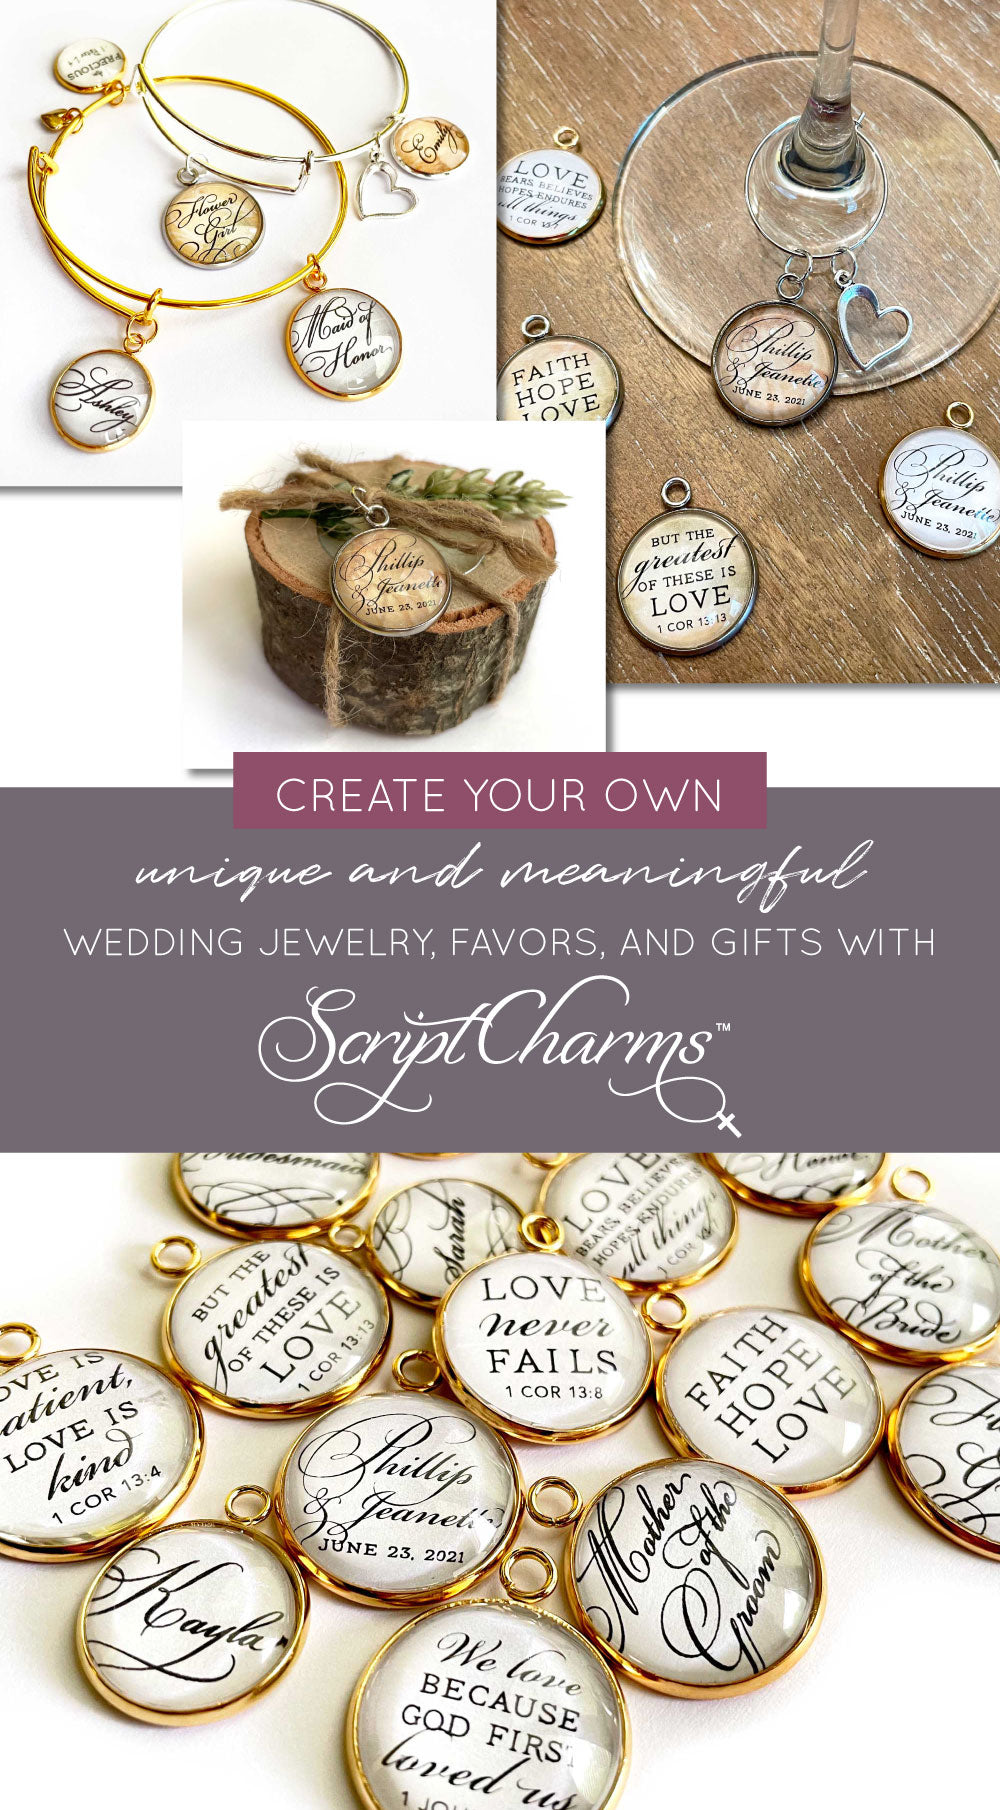 Create your own unique and meaningful wedding jewelry, favors, and gifts with ScriptCharms charms